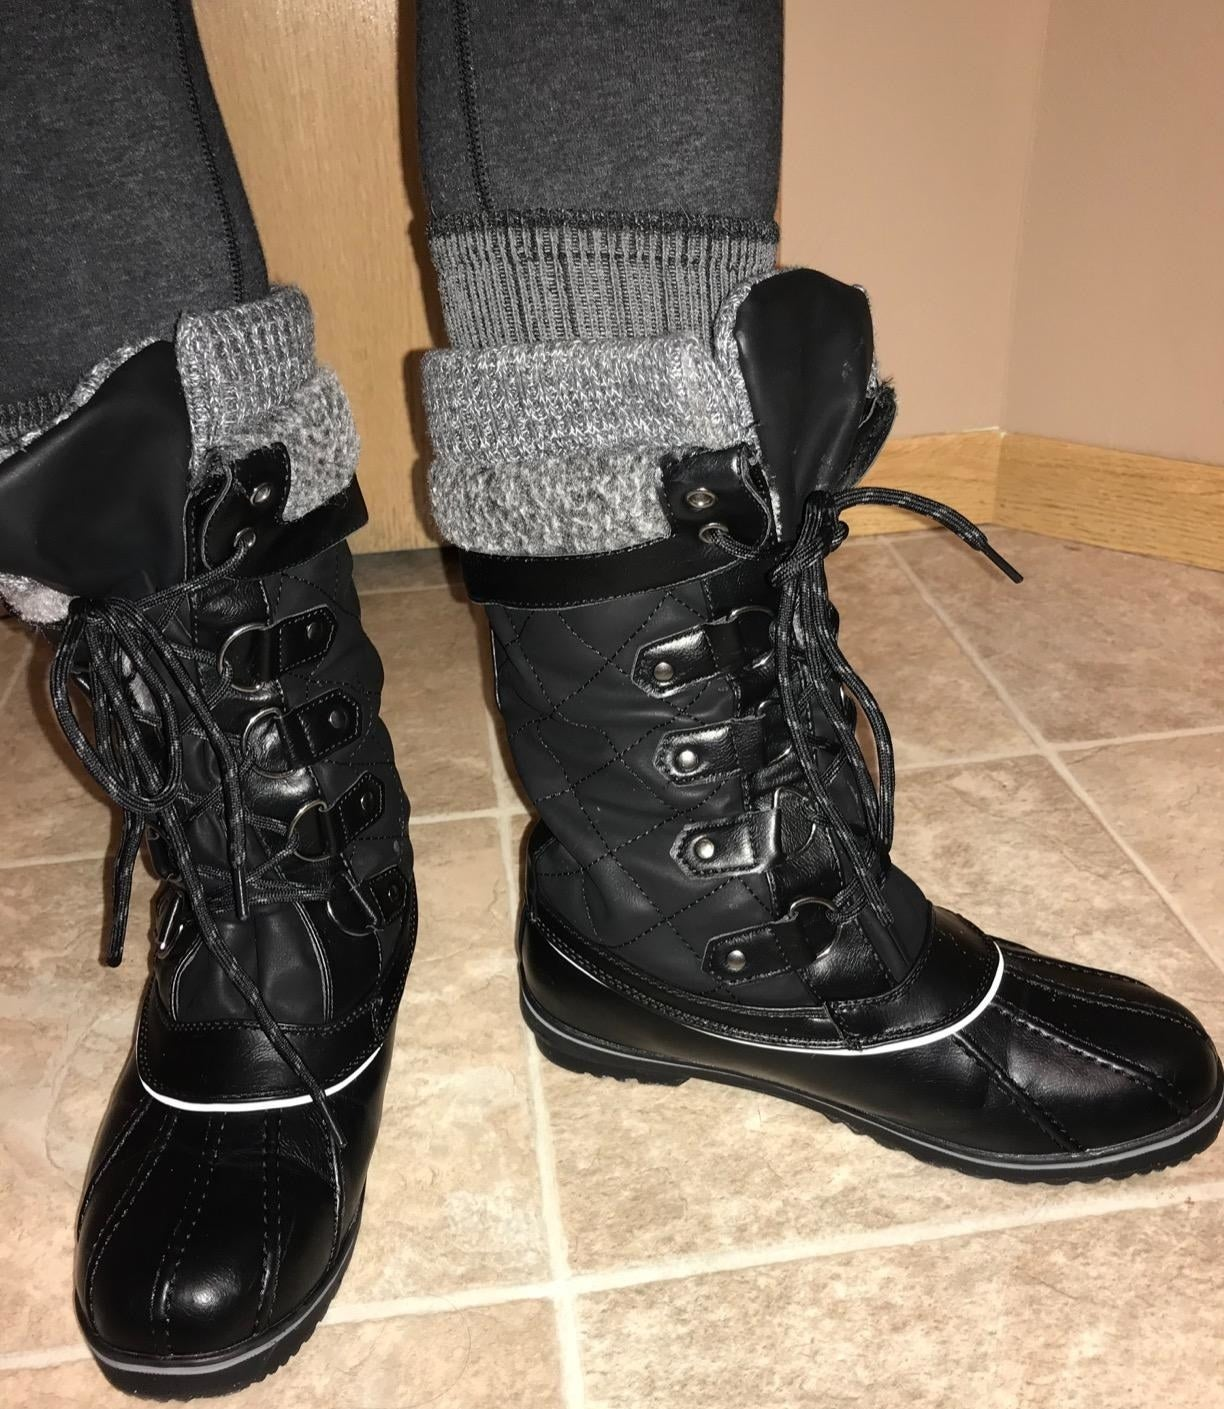 reviewer wearing the boots in black